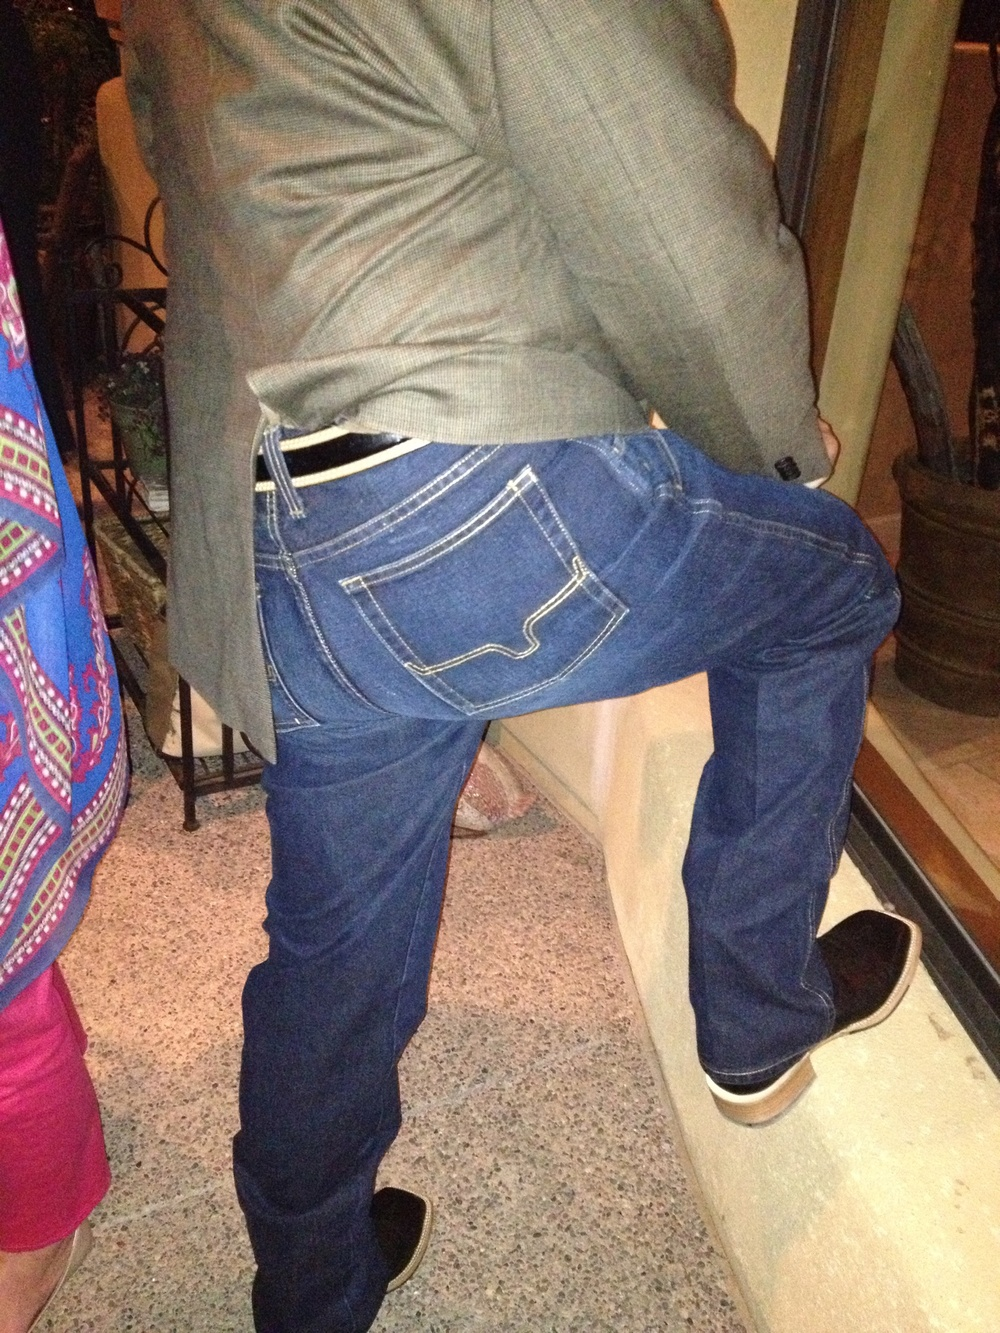 And even more butts...